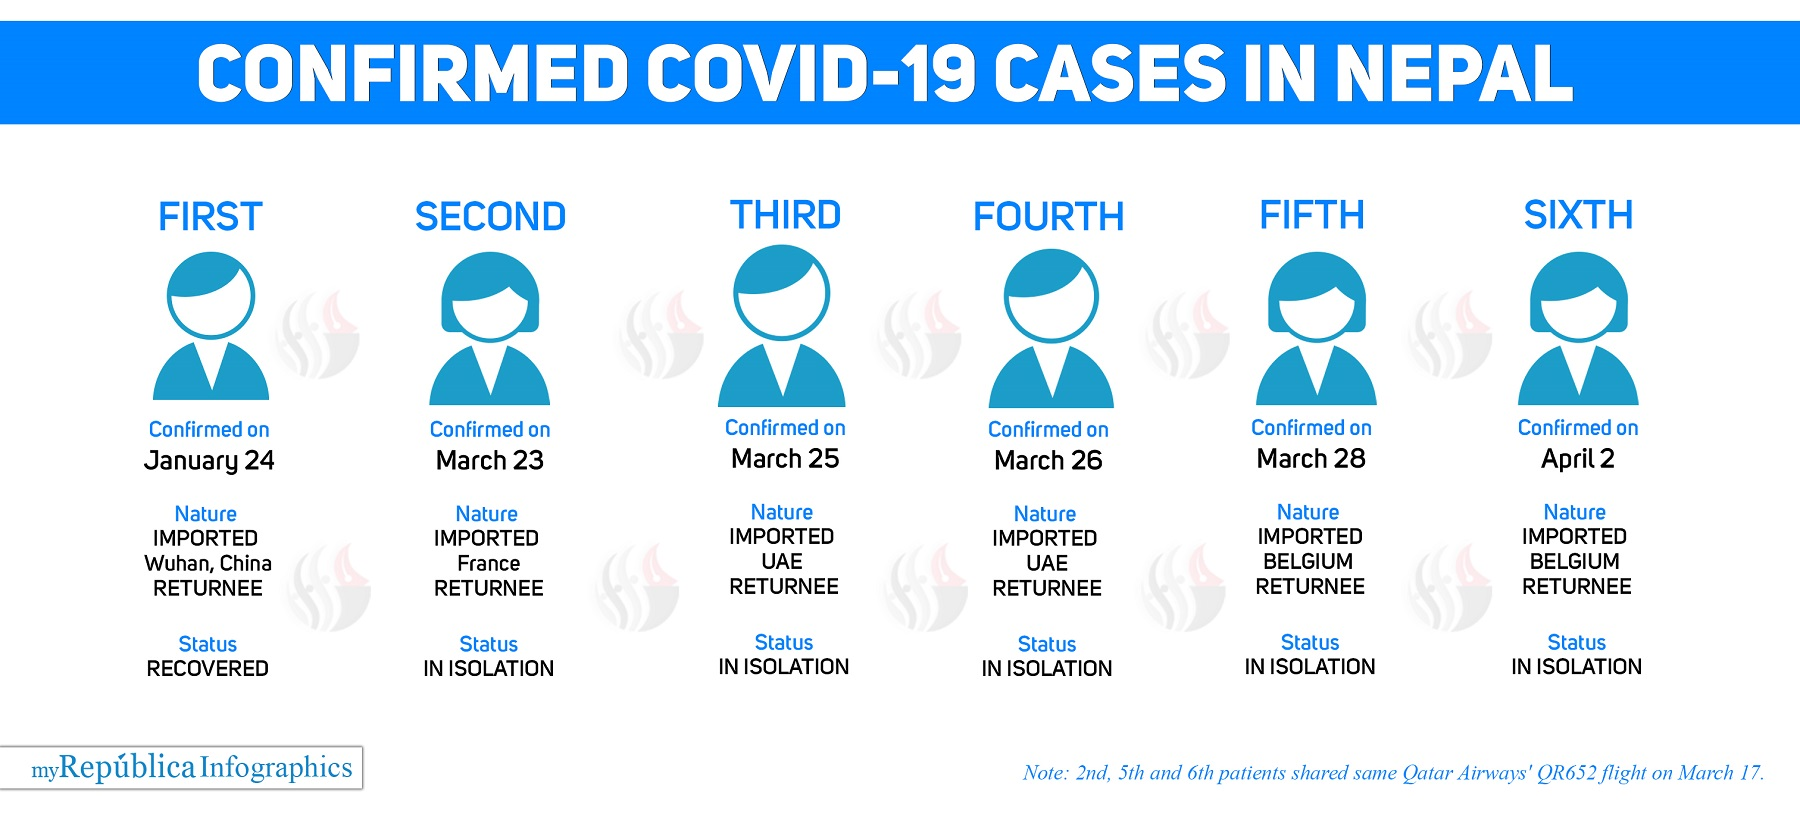 Sixth COVID-19 case confirmed in Nepal